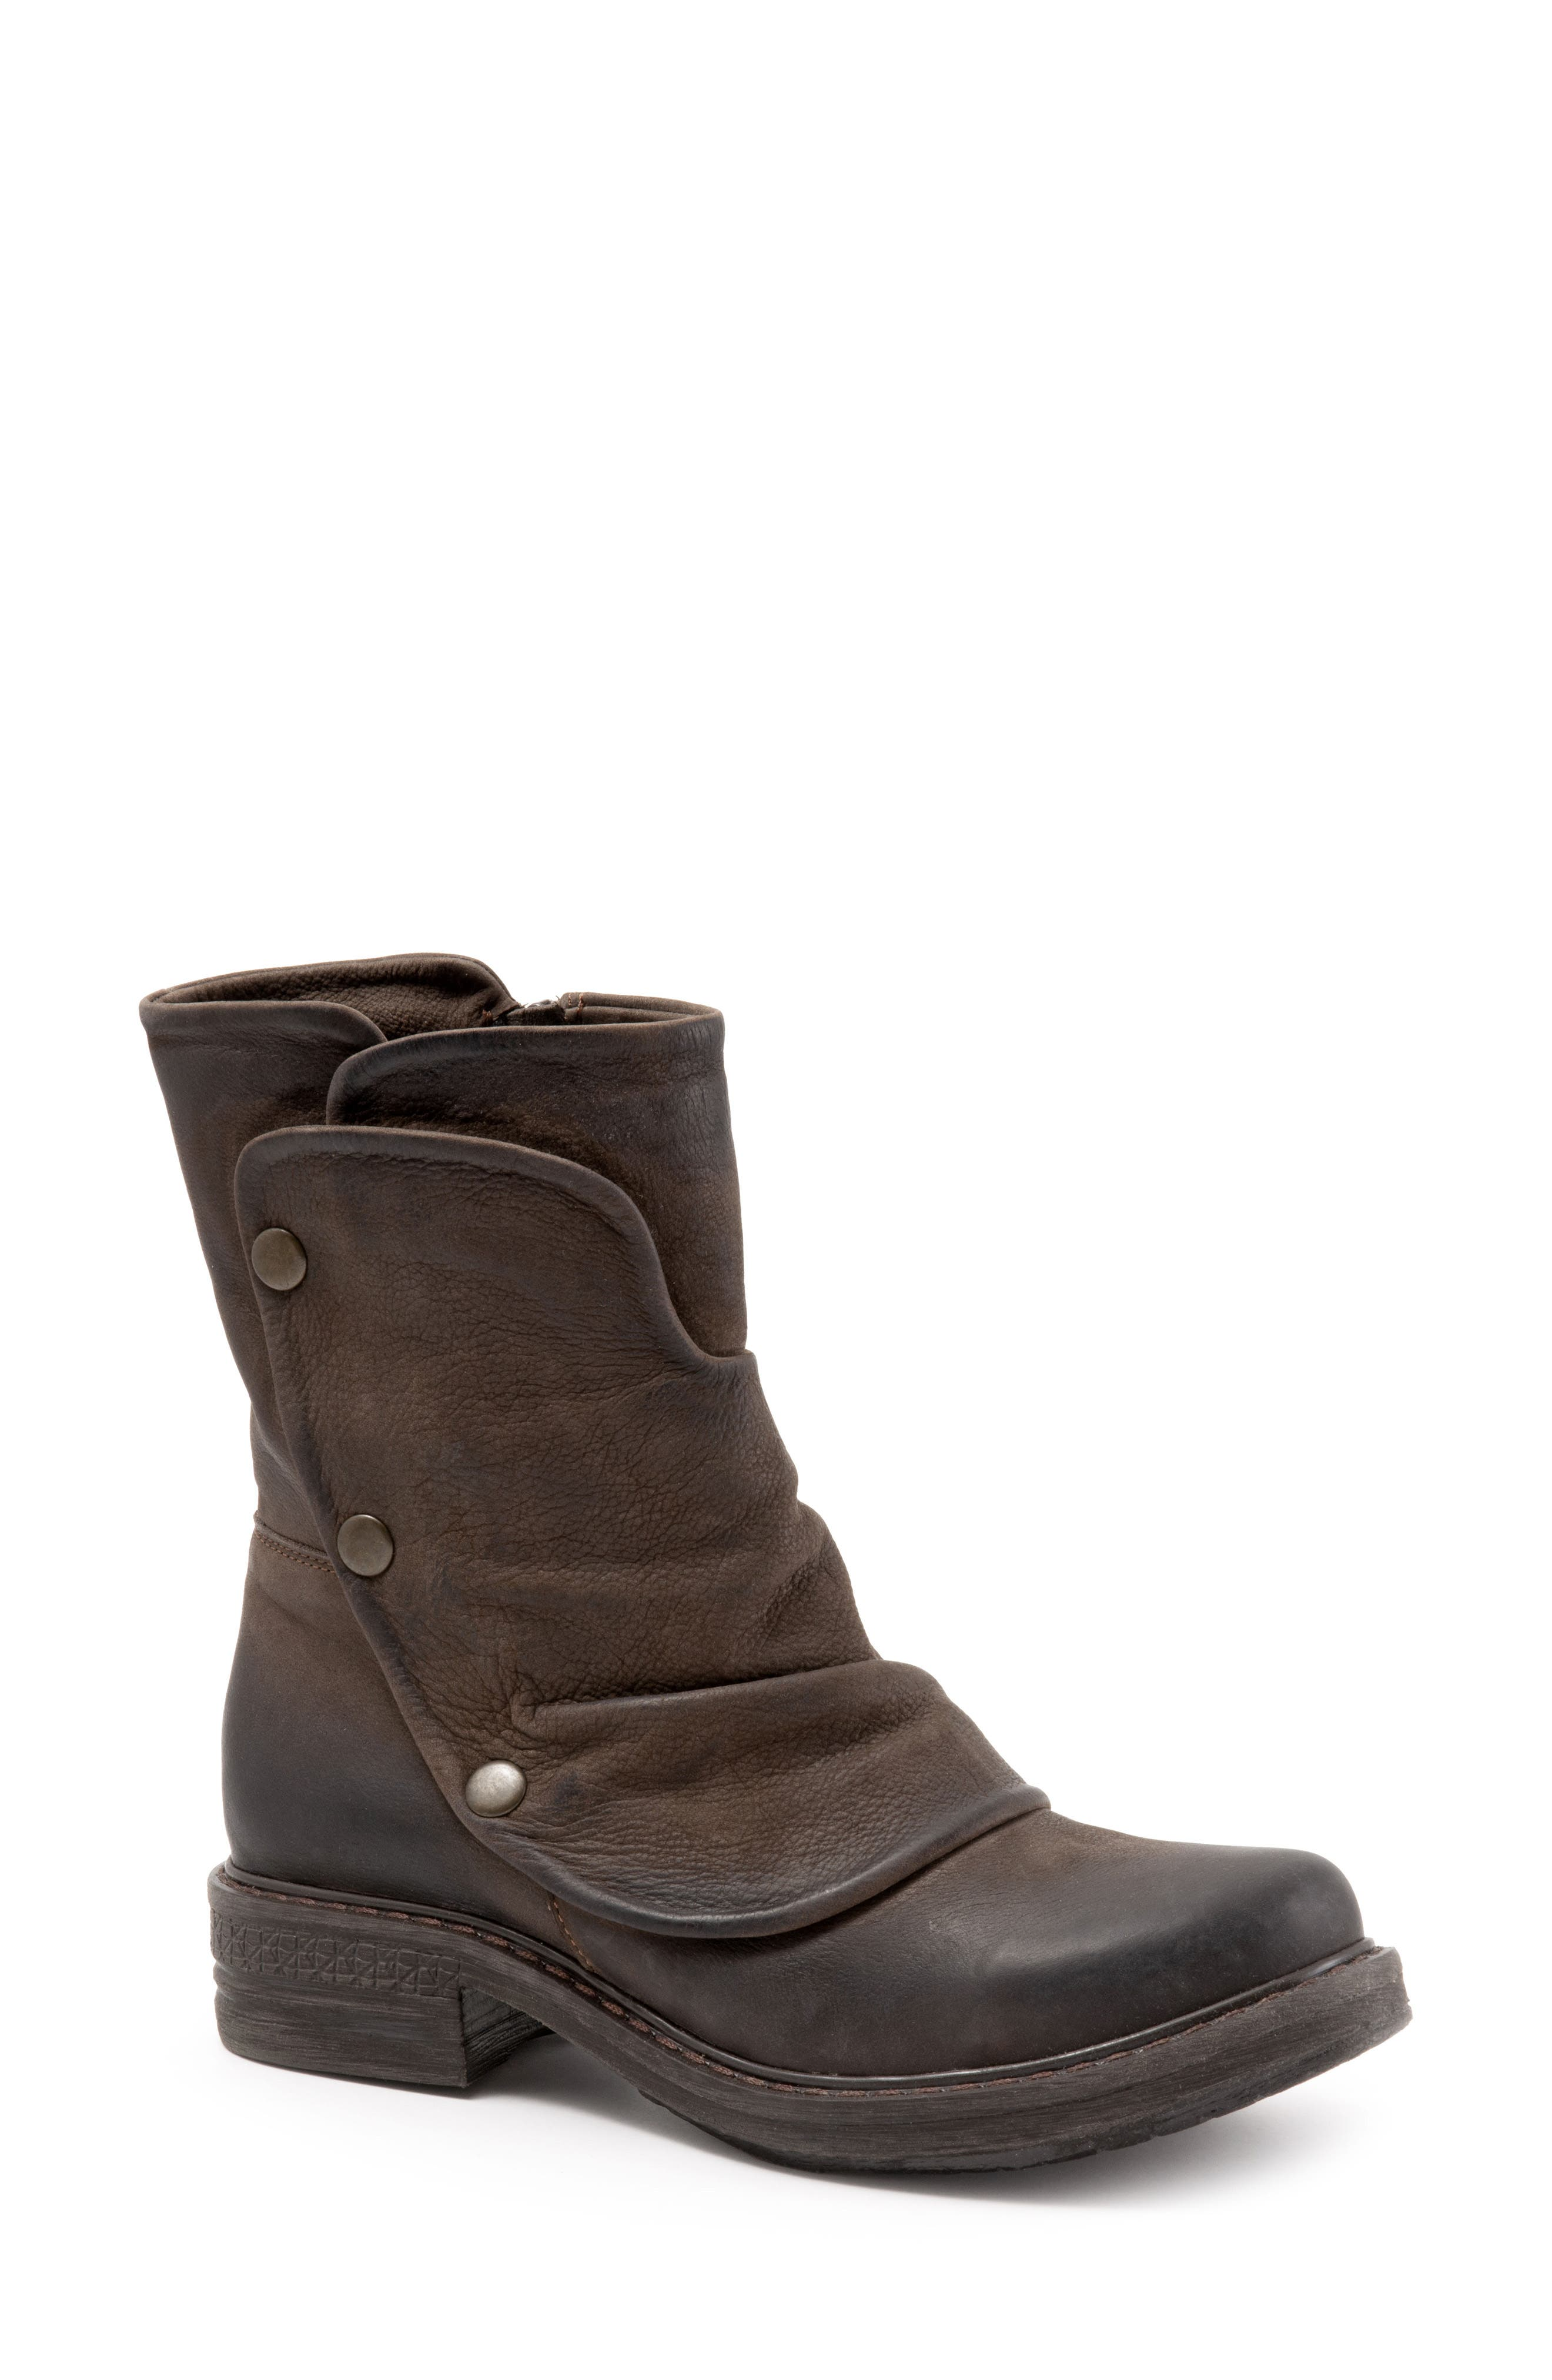 Greta Boot,                             Alternate thumbnail 8, color,                             BROWN NUBUCK